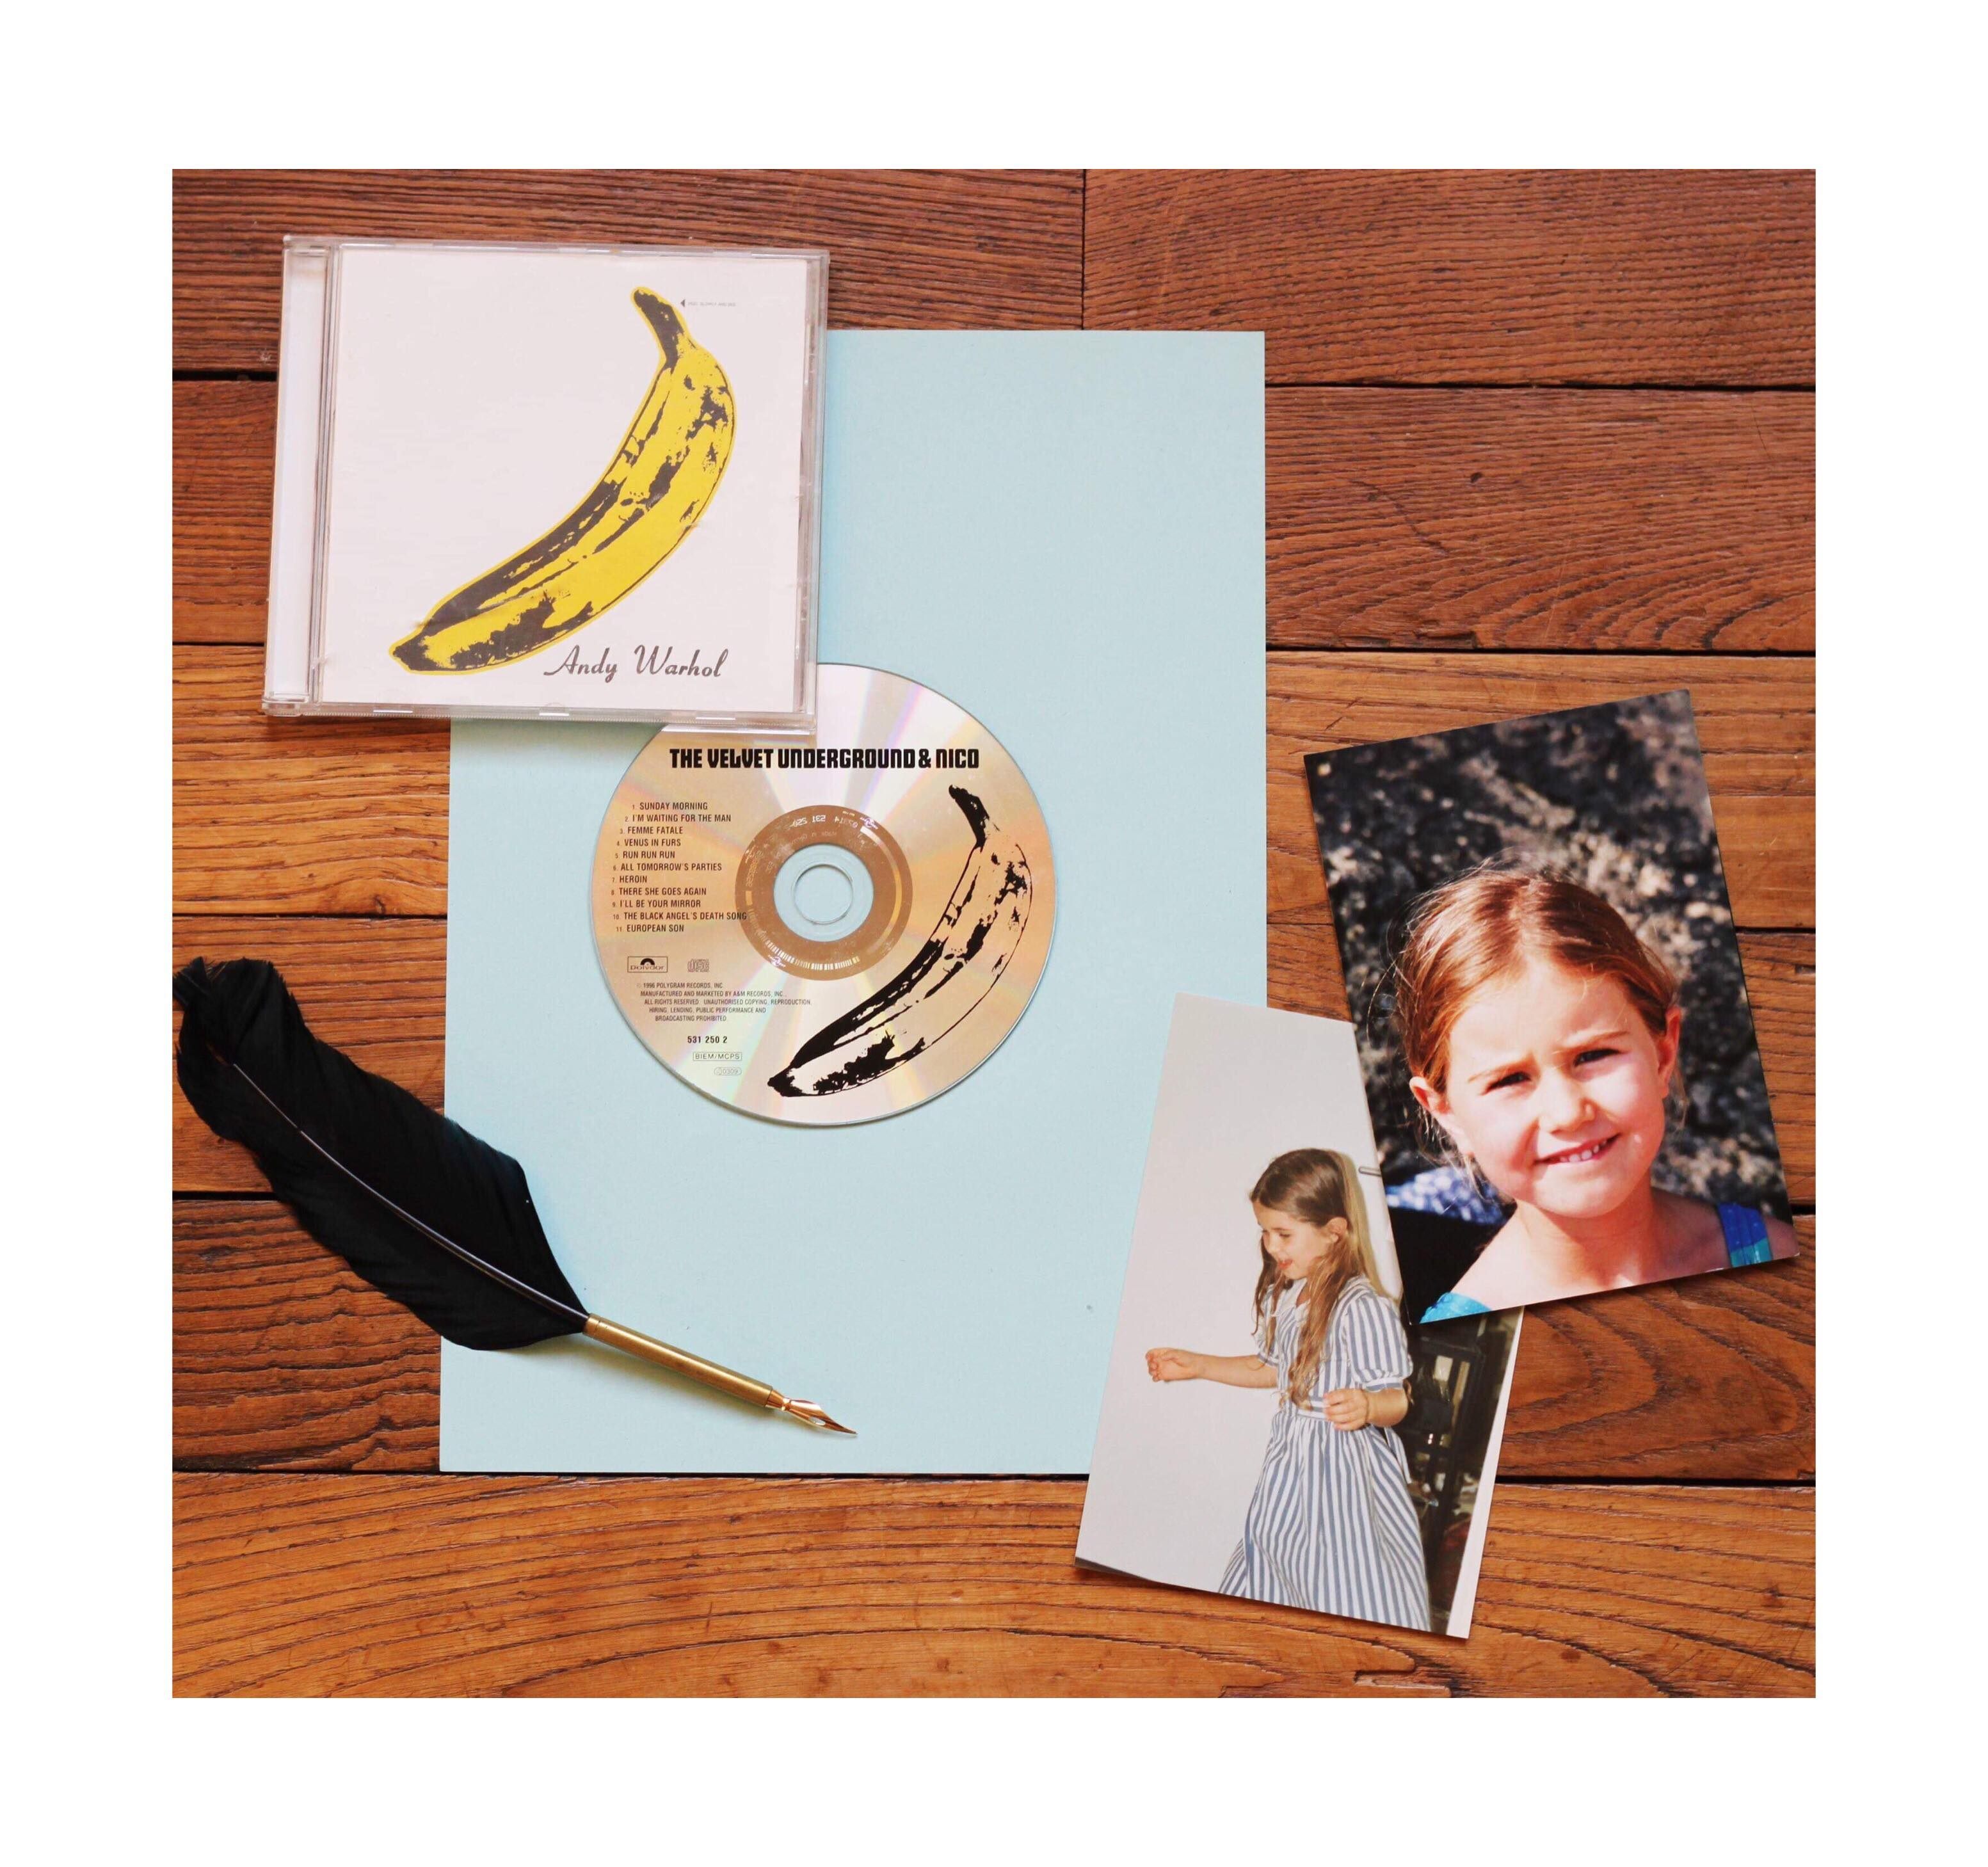 AW atelier initiales journal, différent objets